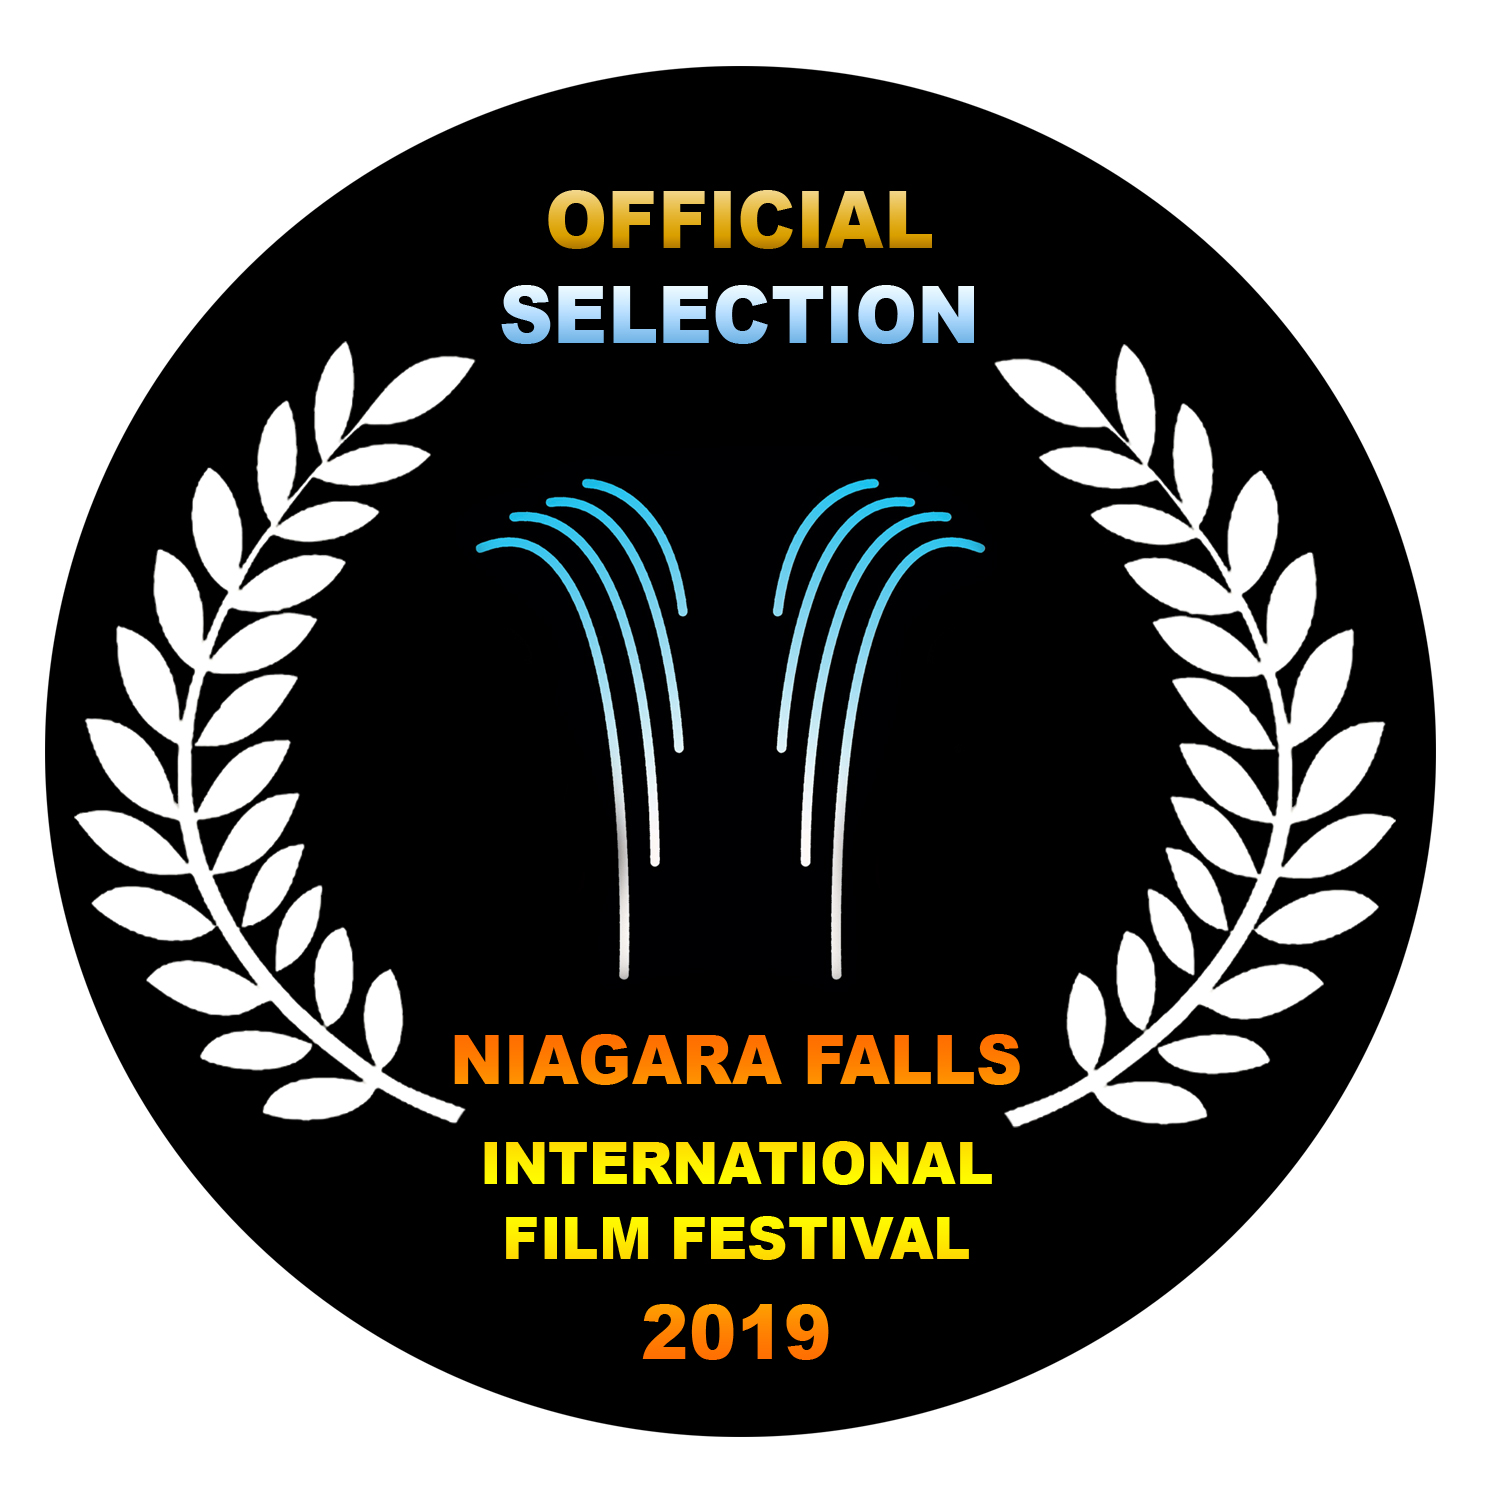 nfiff laurels - official selection 2019.jpg